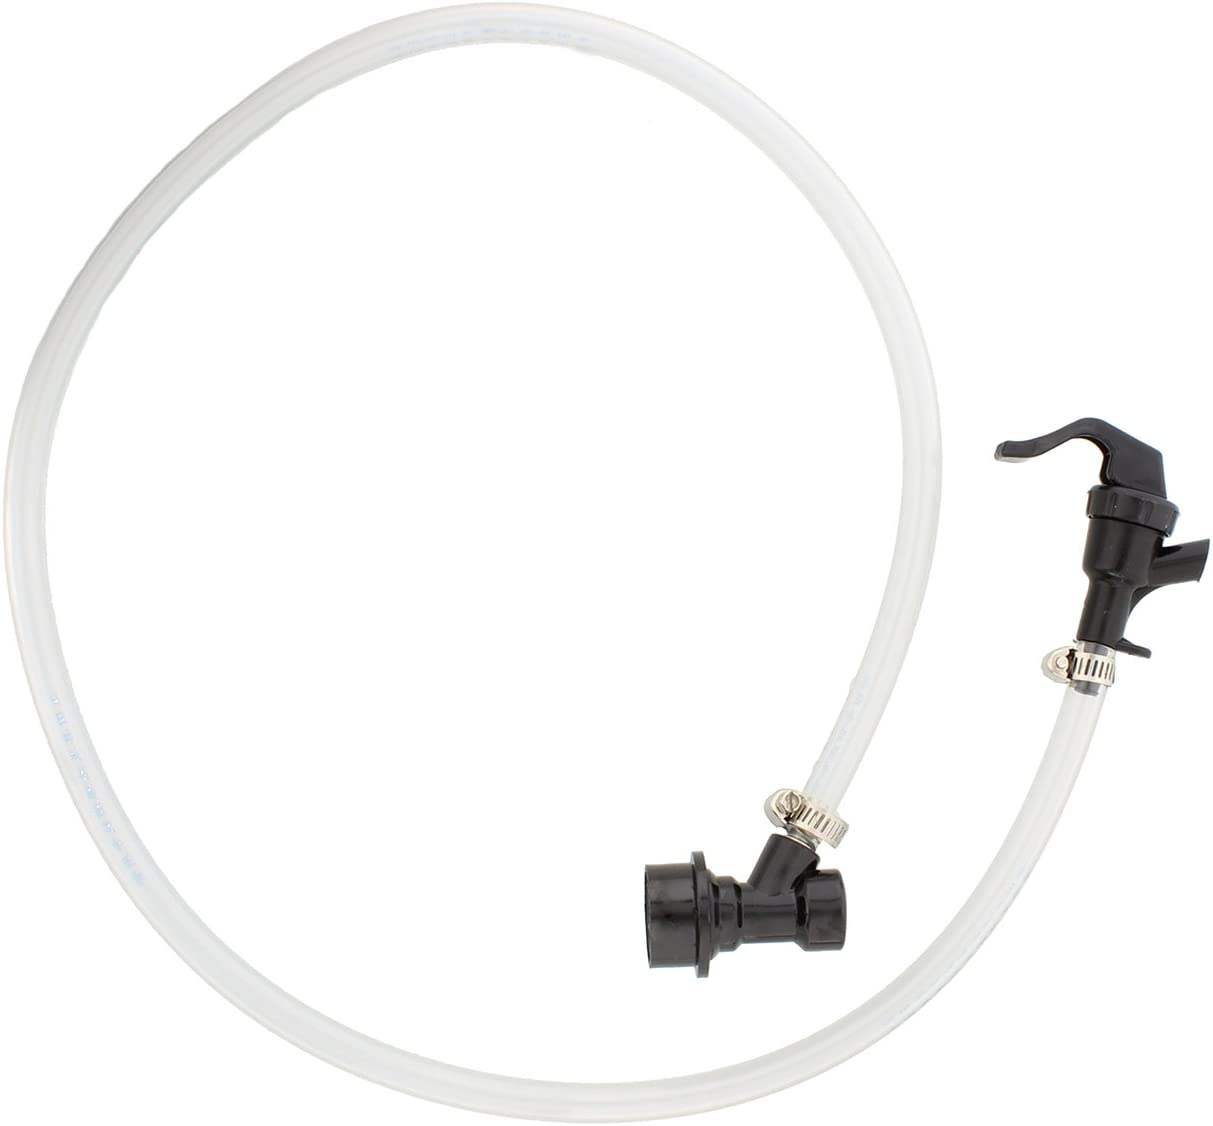 Ball Lock Cornelius Beer Keg Line Assembly – 3/16 x 40in Tubing, Picnic Faucet, and MFL Liquid Disconnect - Preassembled